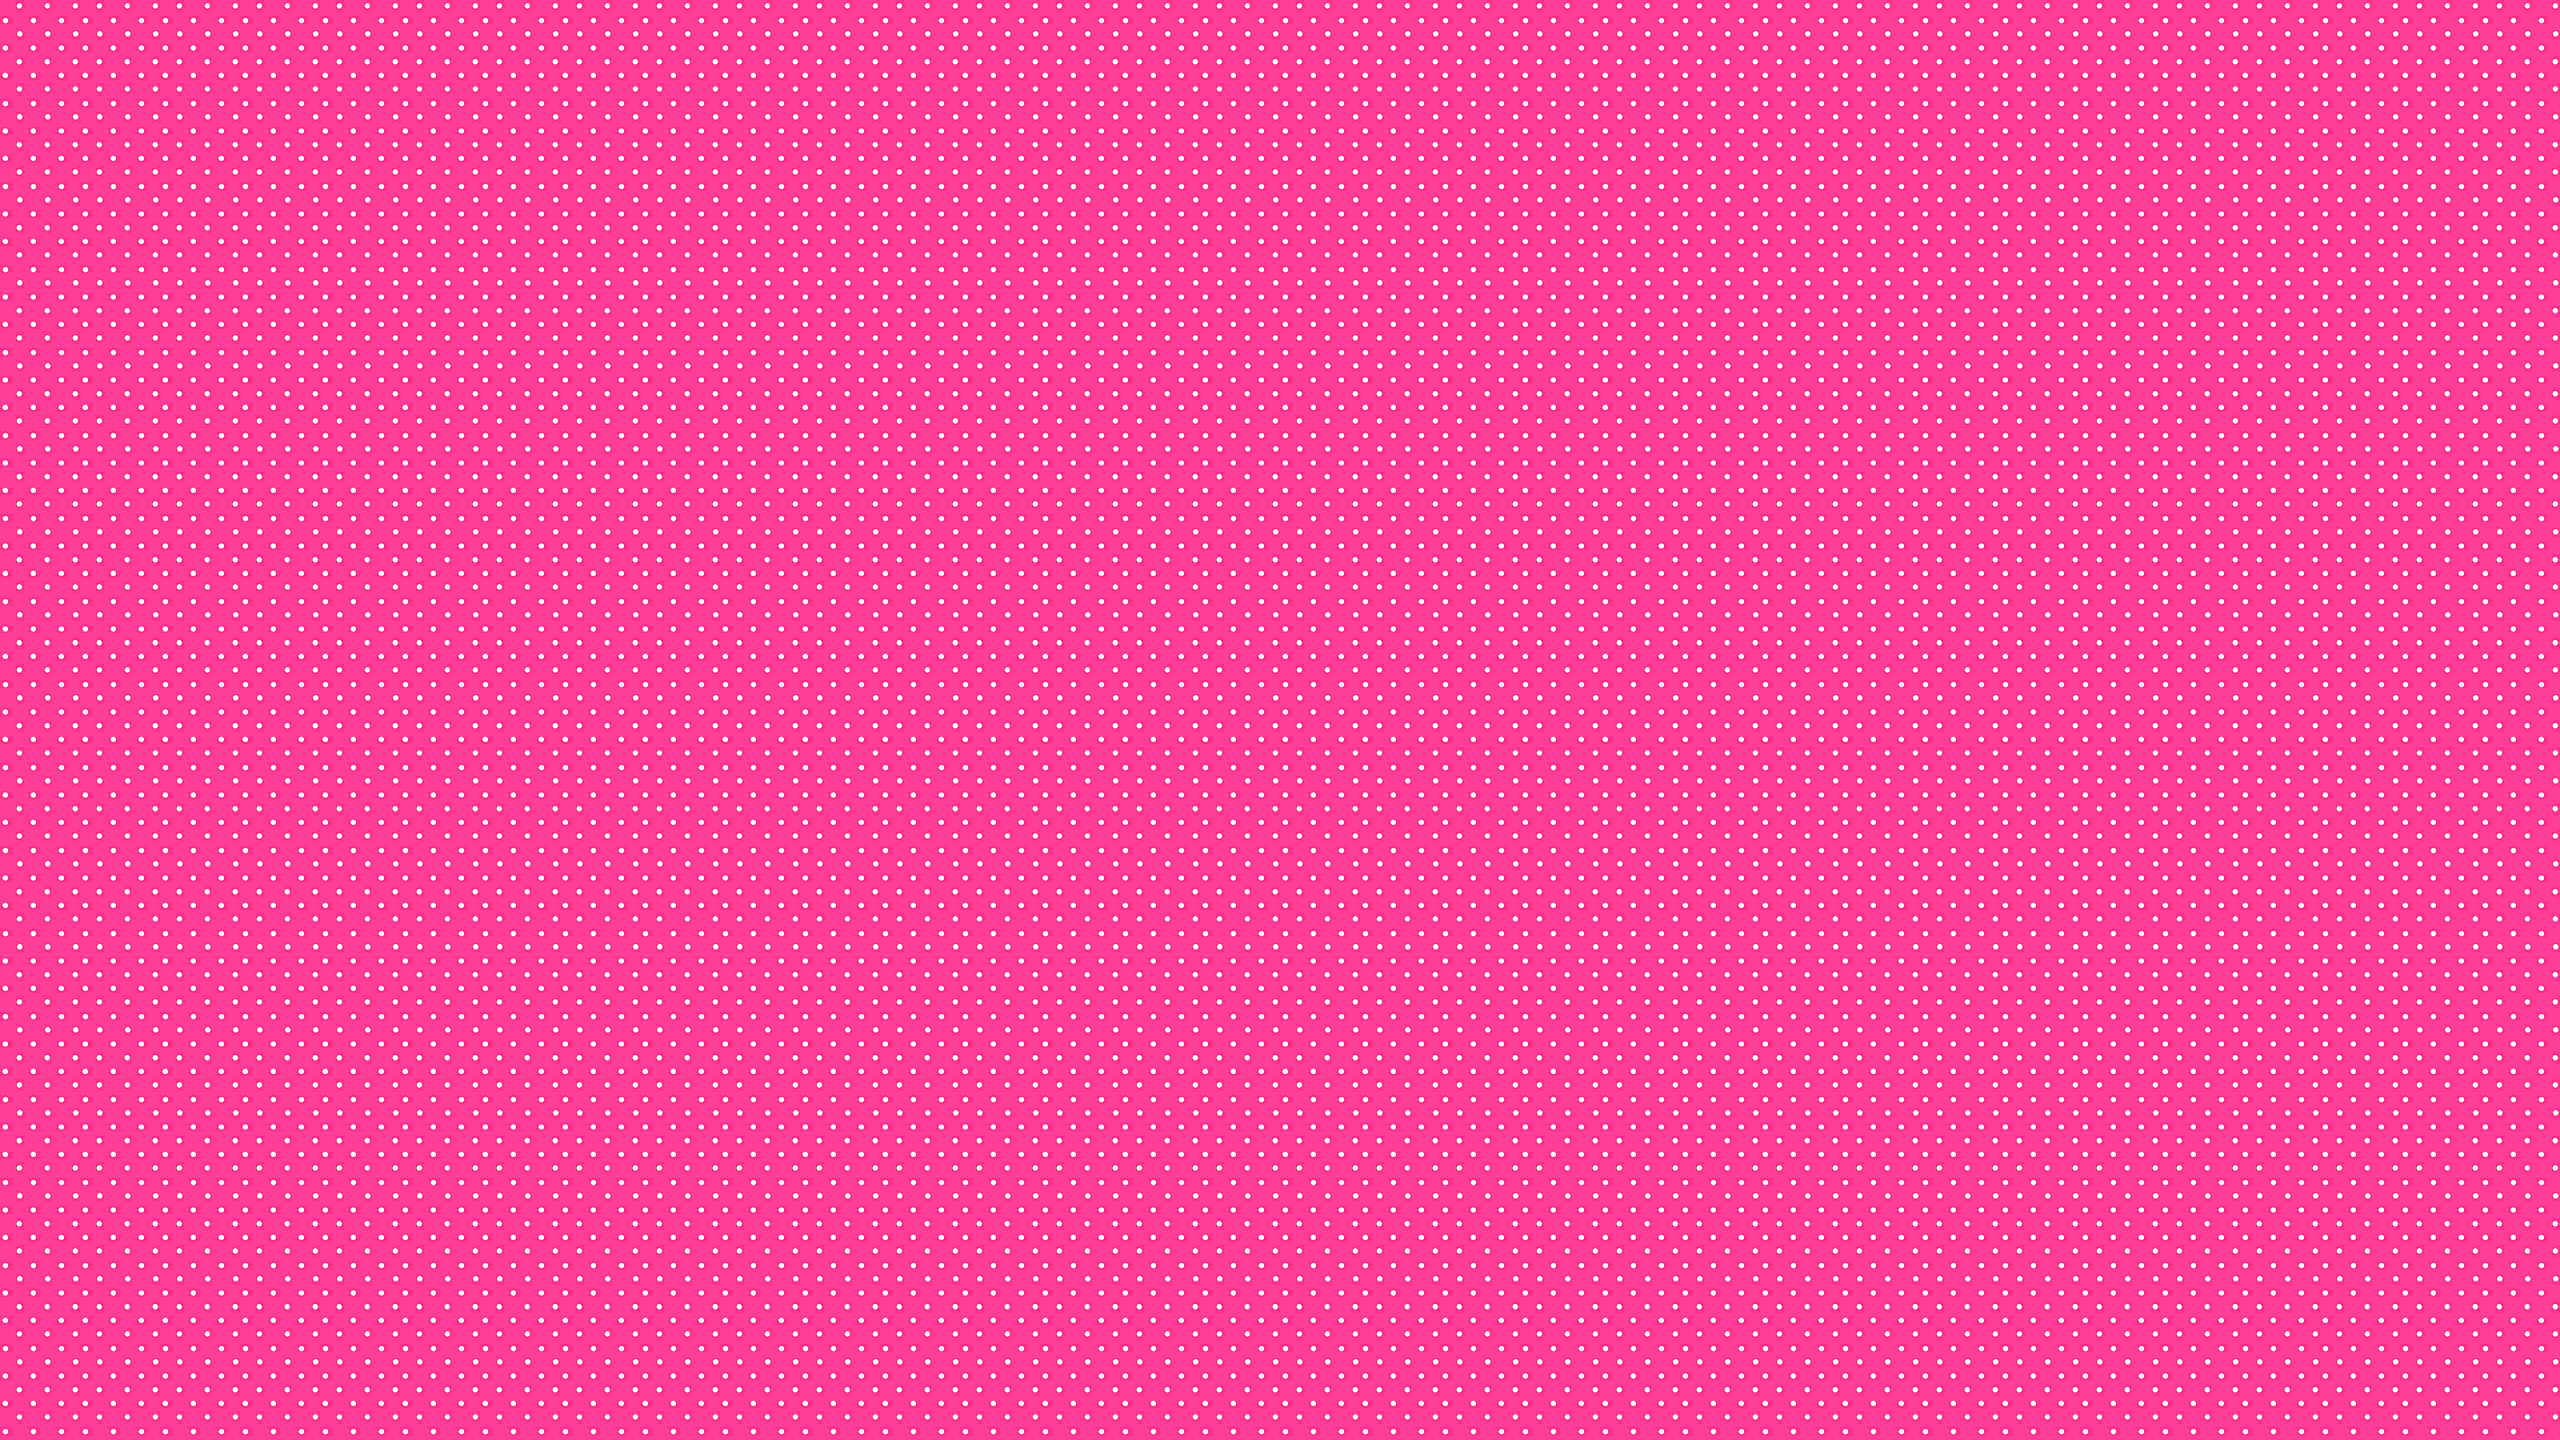 Pics photos pink polka dot s wallpaper - Pink Polka Dots Desktop Wallpaper Is Easy Just Save The Wallpaper